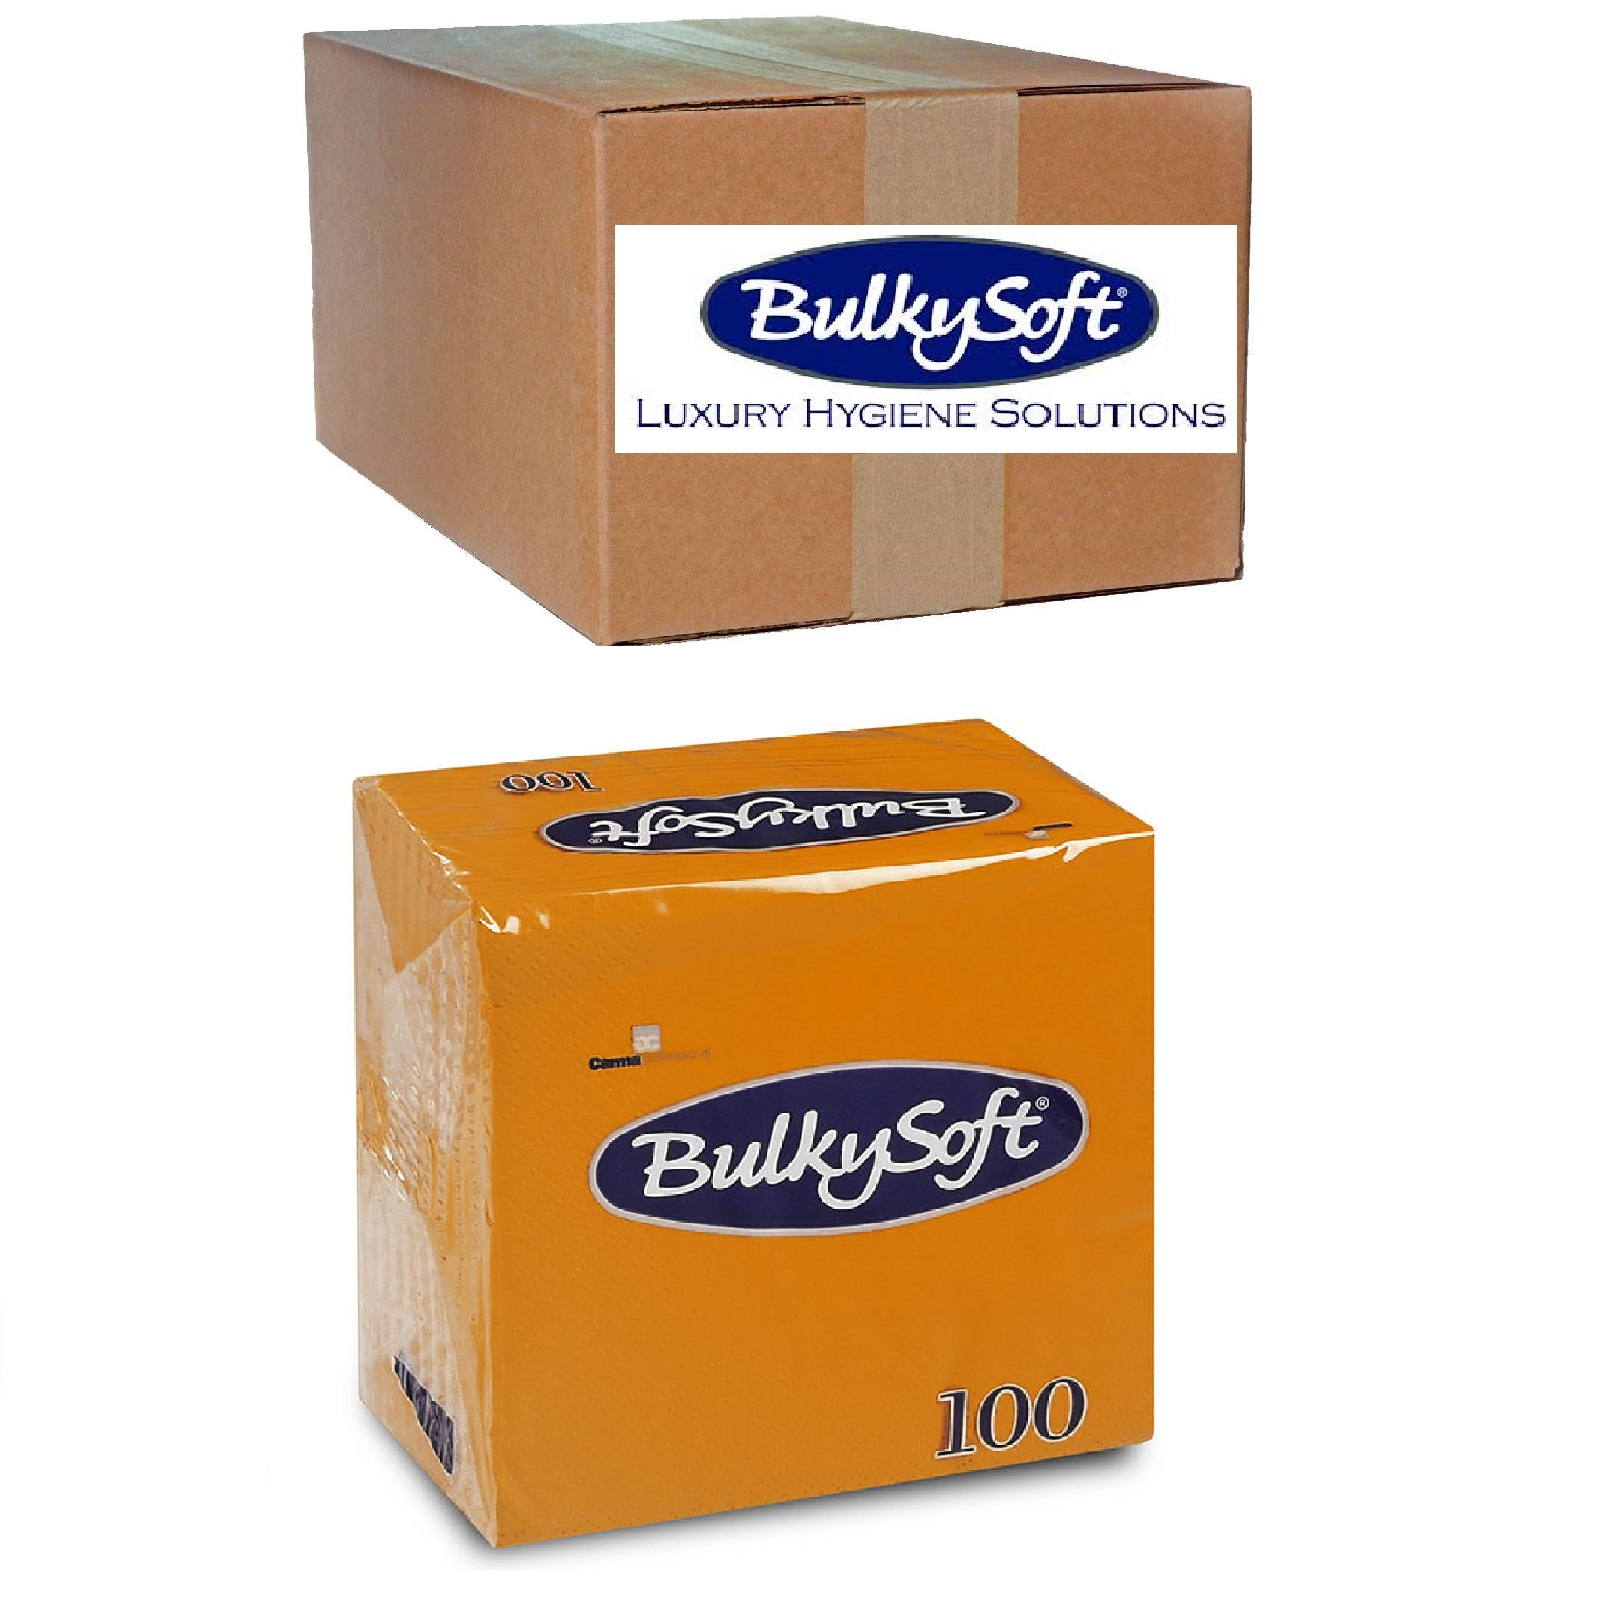 Bulky Soft Servietten 1/4 Falz, 2-lagig, 24 cm x 24 cm, orange 30 x 100 Stk.